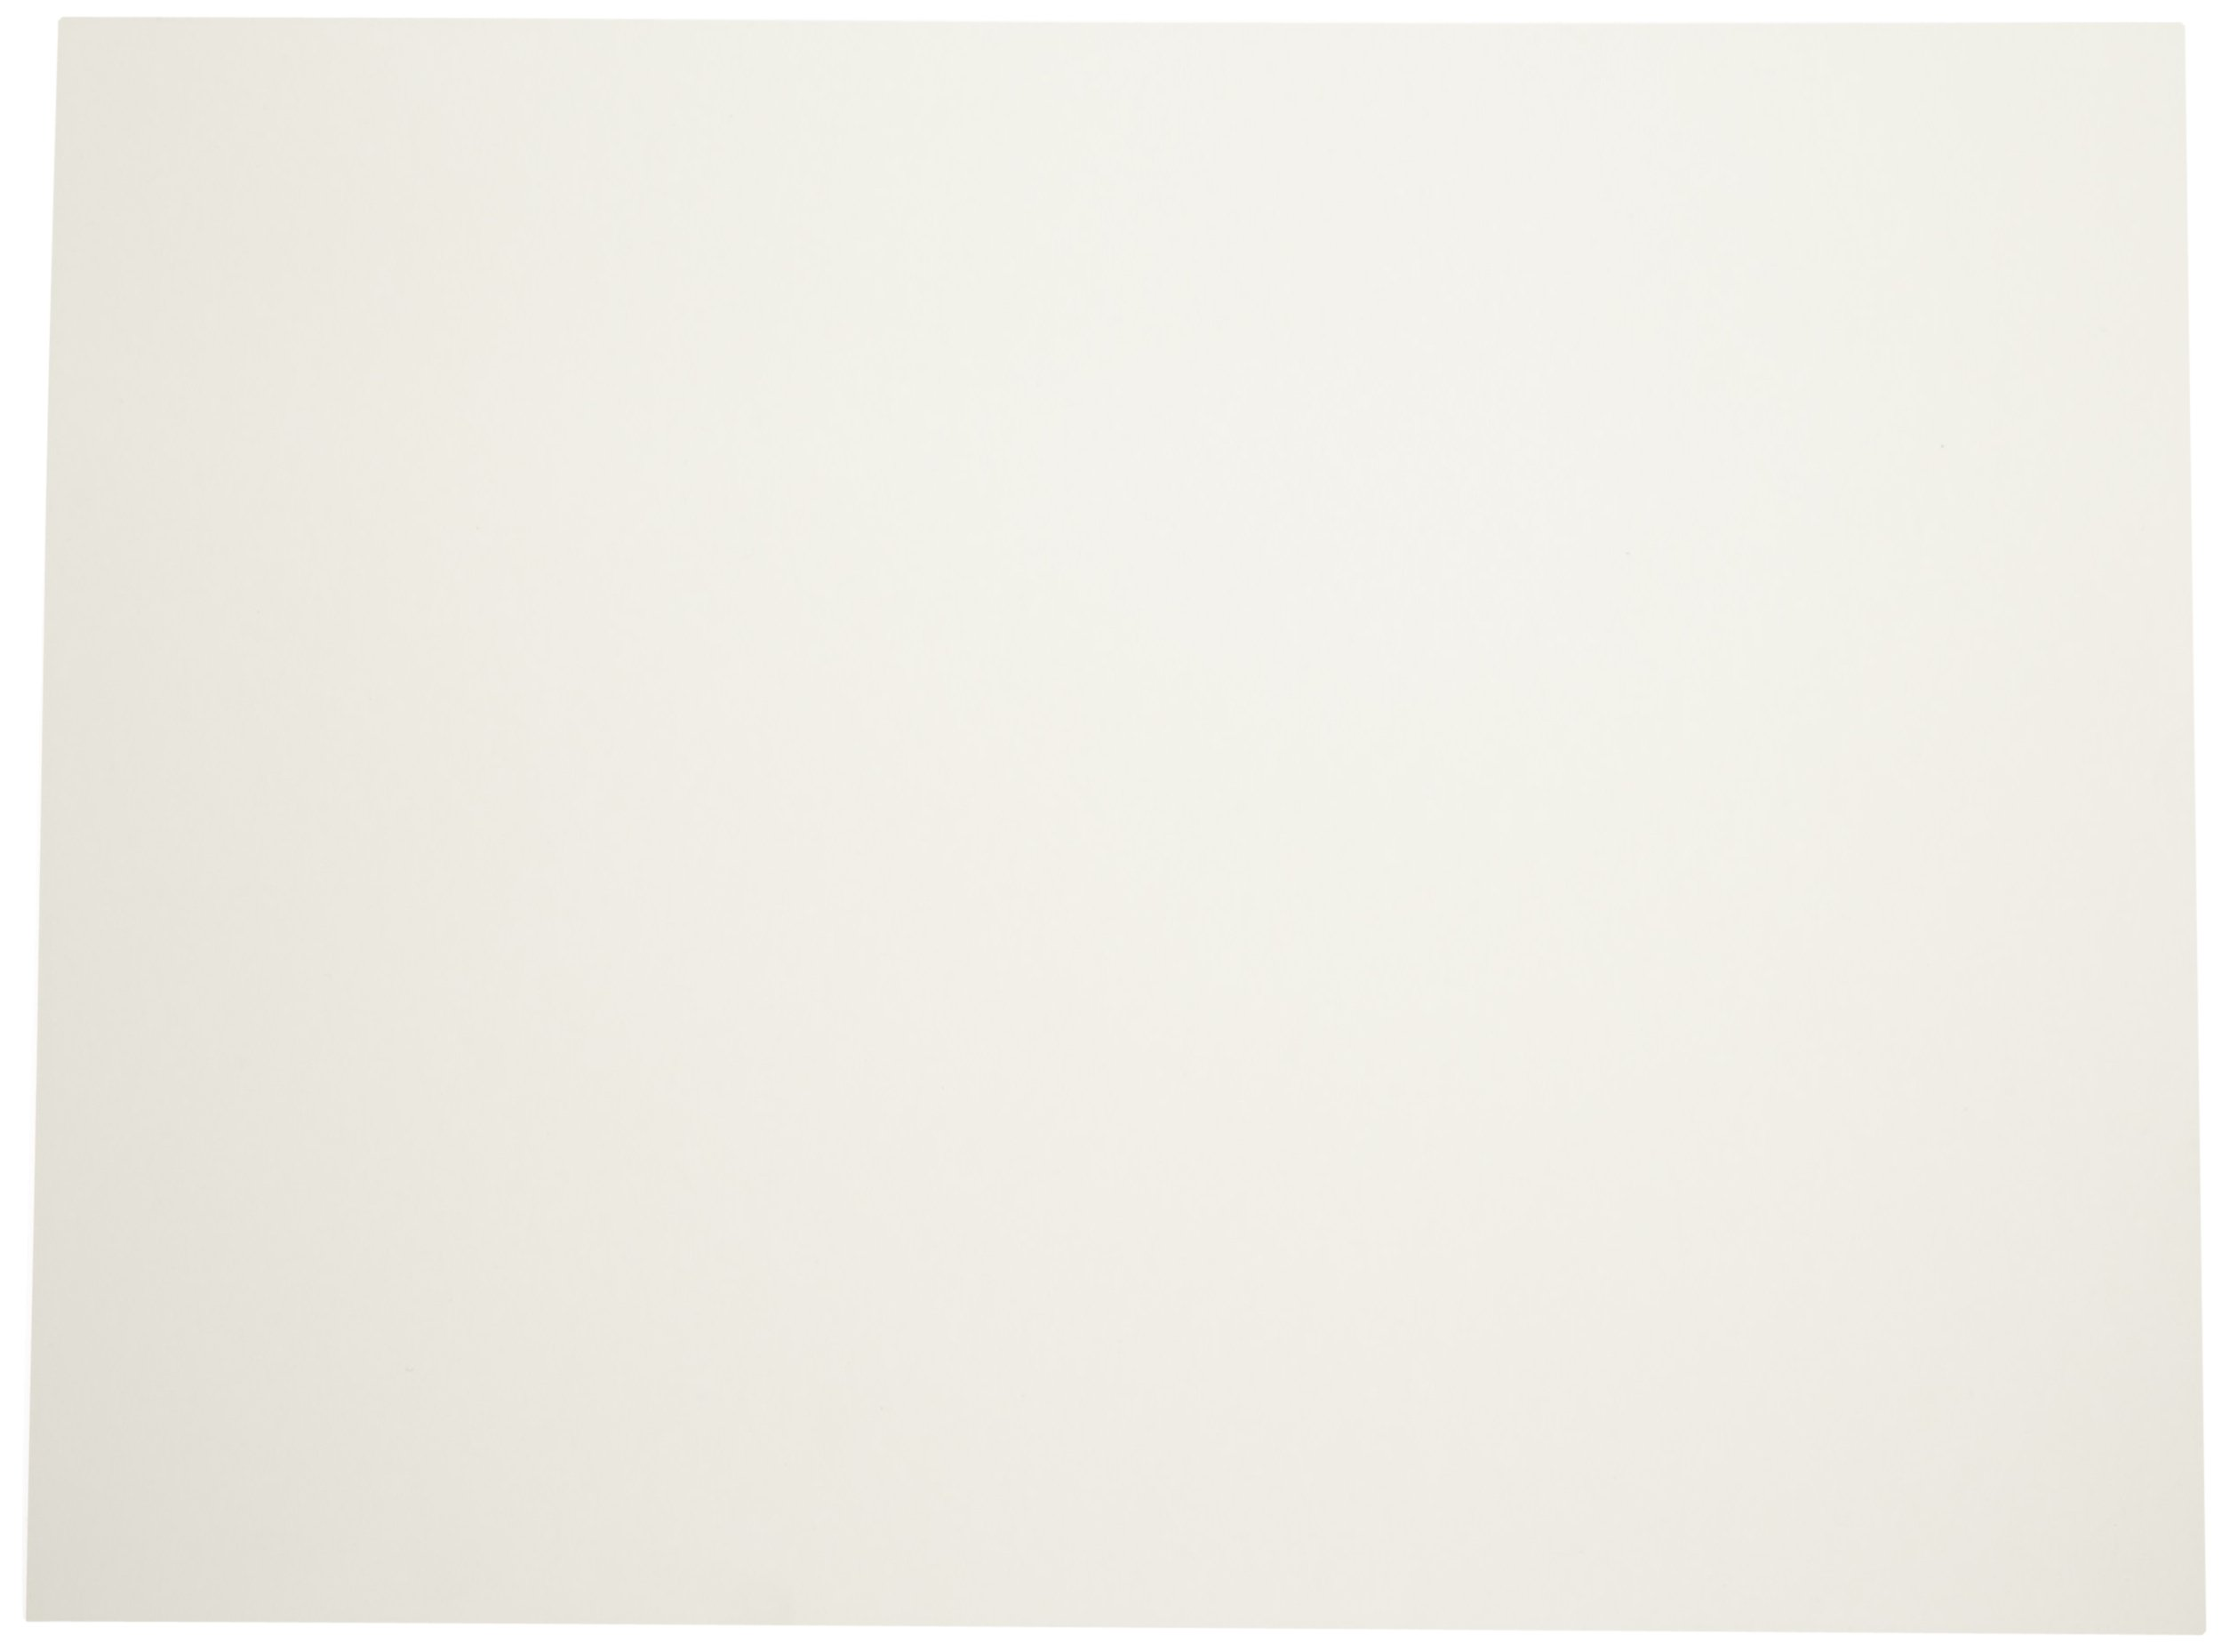 Sax Watercolor Paper, 140 lb, 18 x 24 Inches, Natural White, 100 Sheets - 358445 by Sax